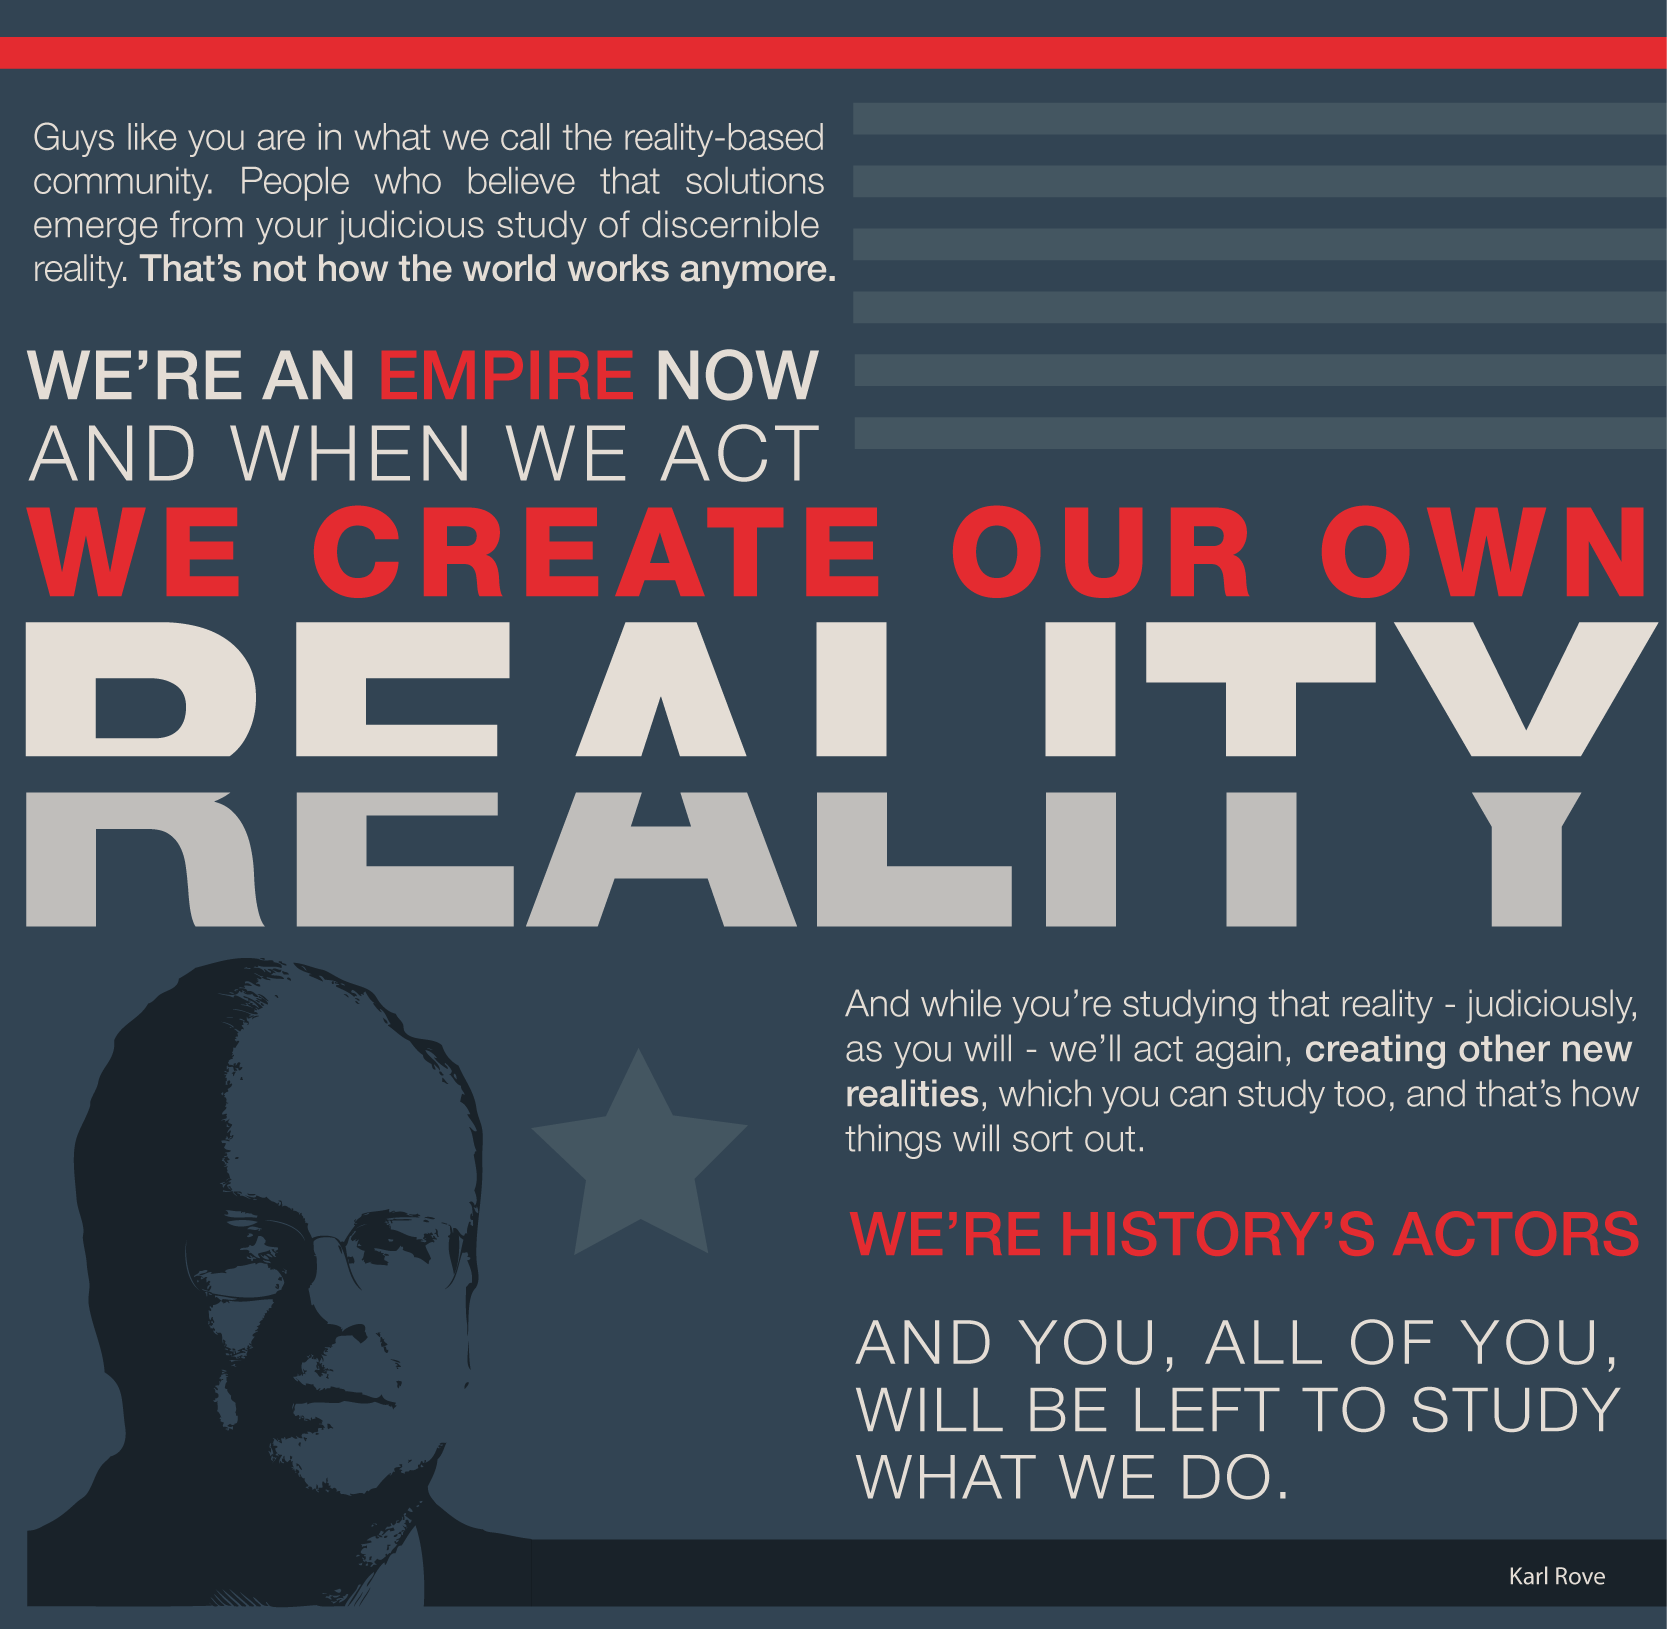 Karl Rove quote #2